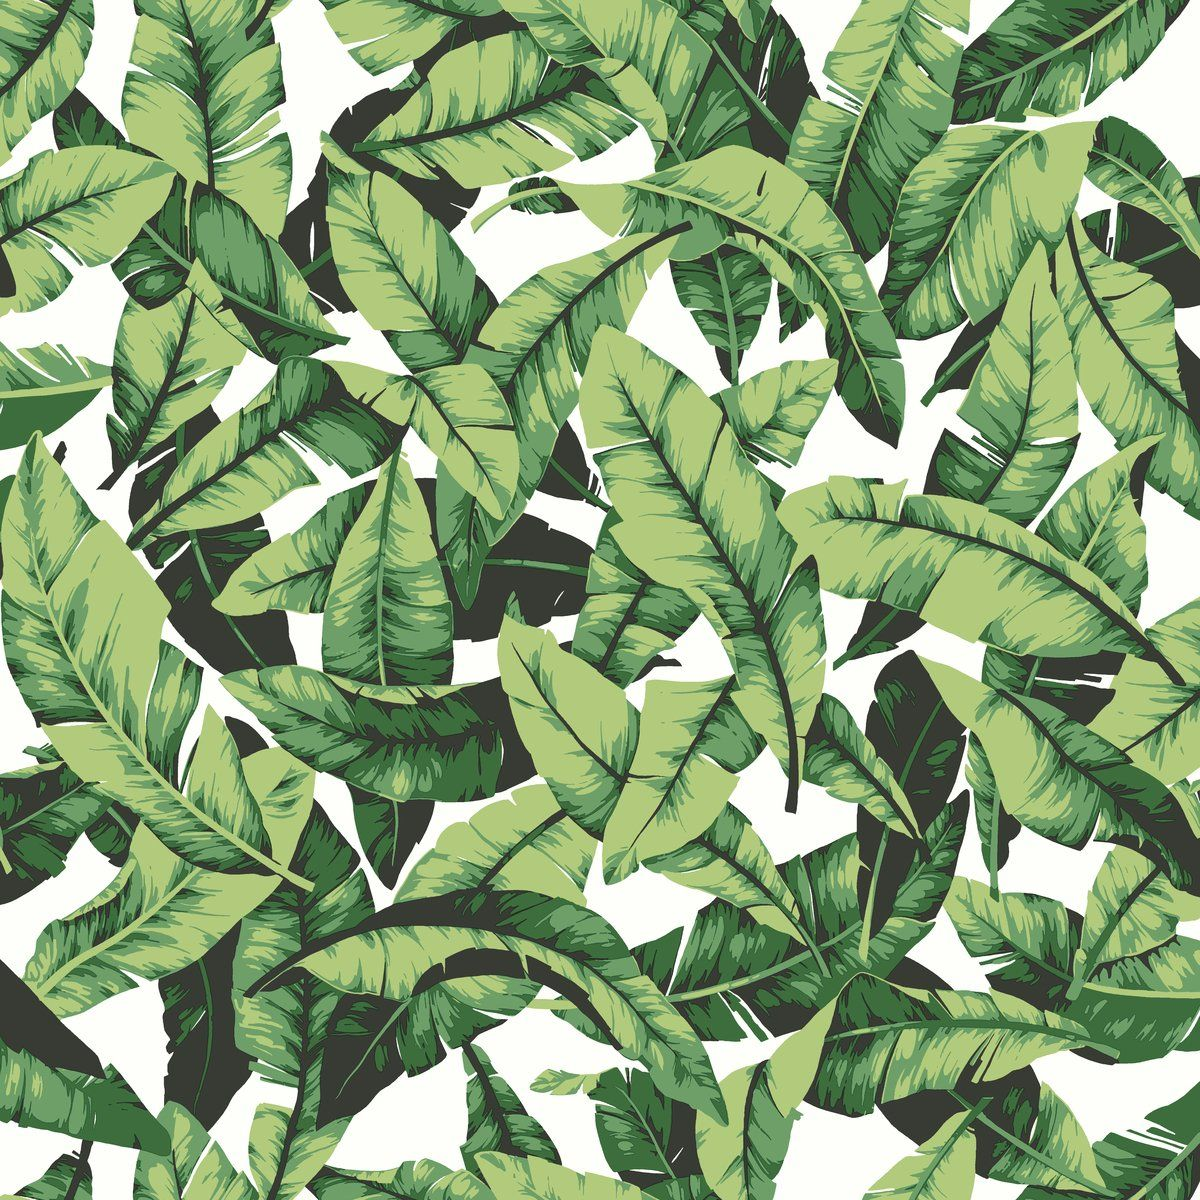 1200x1200 RoomMates Tropical Palm Leaf Peel and Stick Wallpaper, 20.5